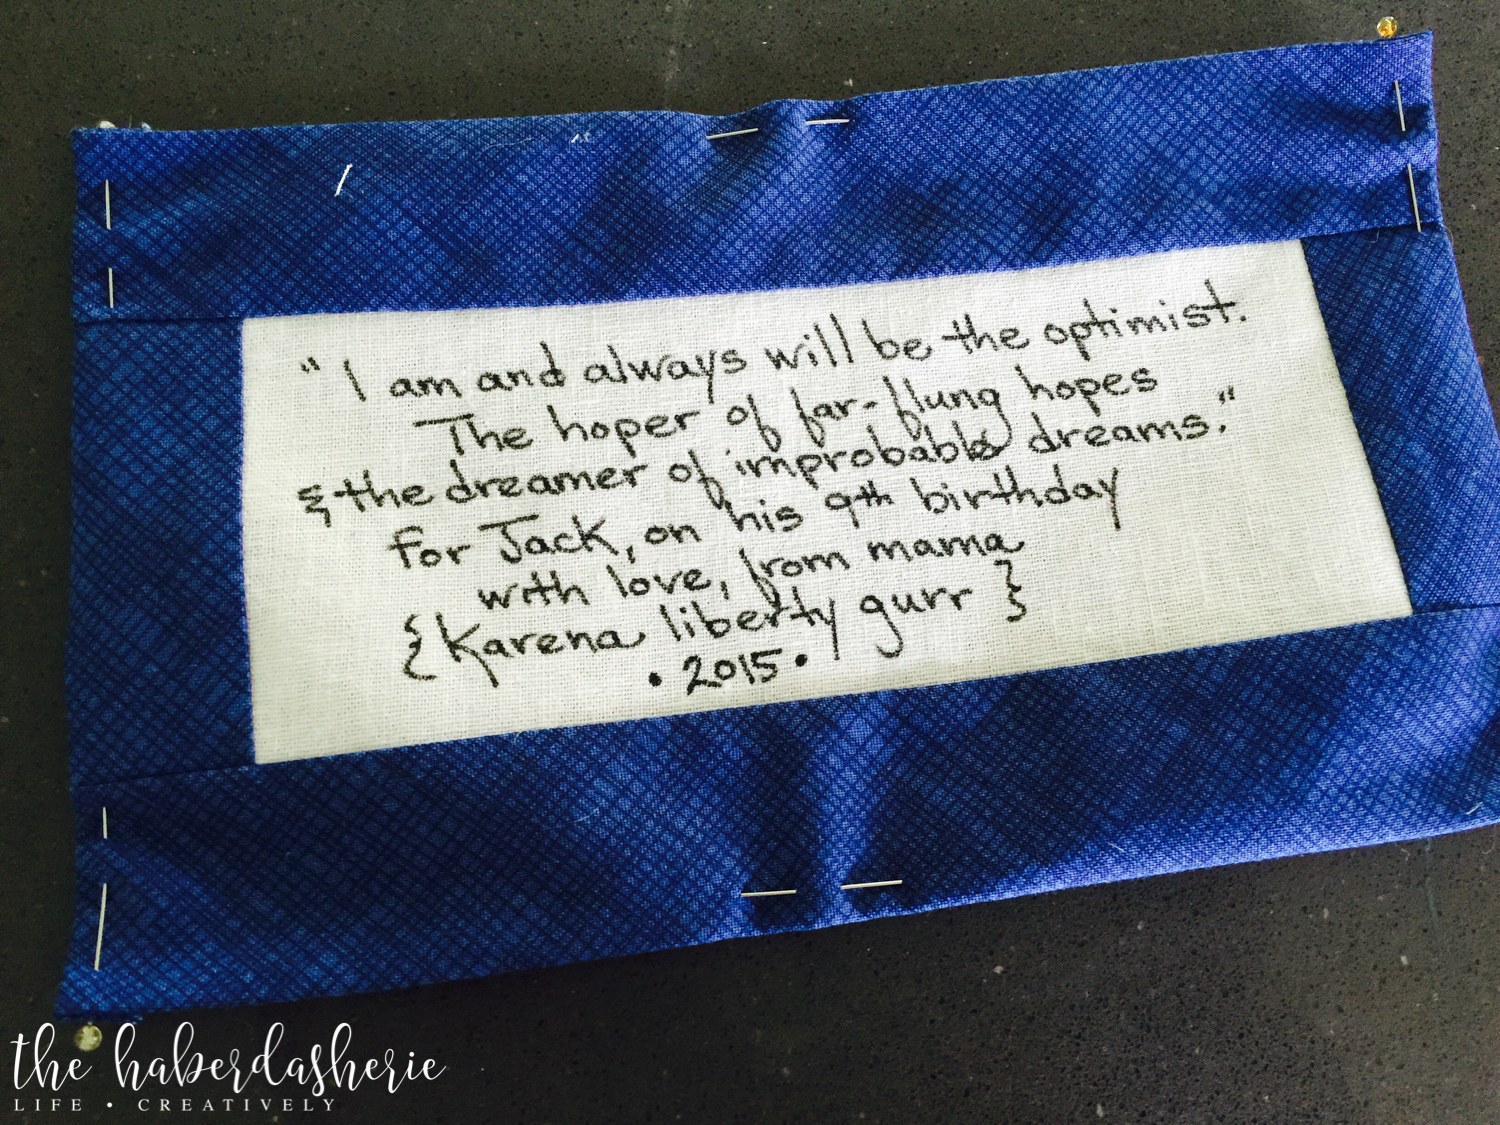 Watermarked the haberdasherie quilt labels (1 of 1).jpg